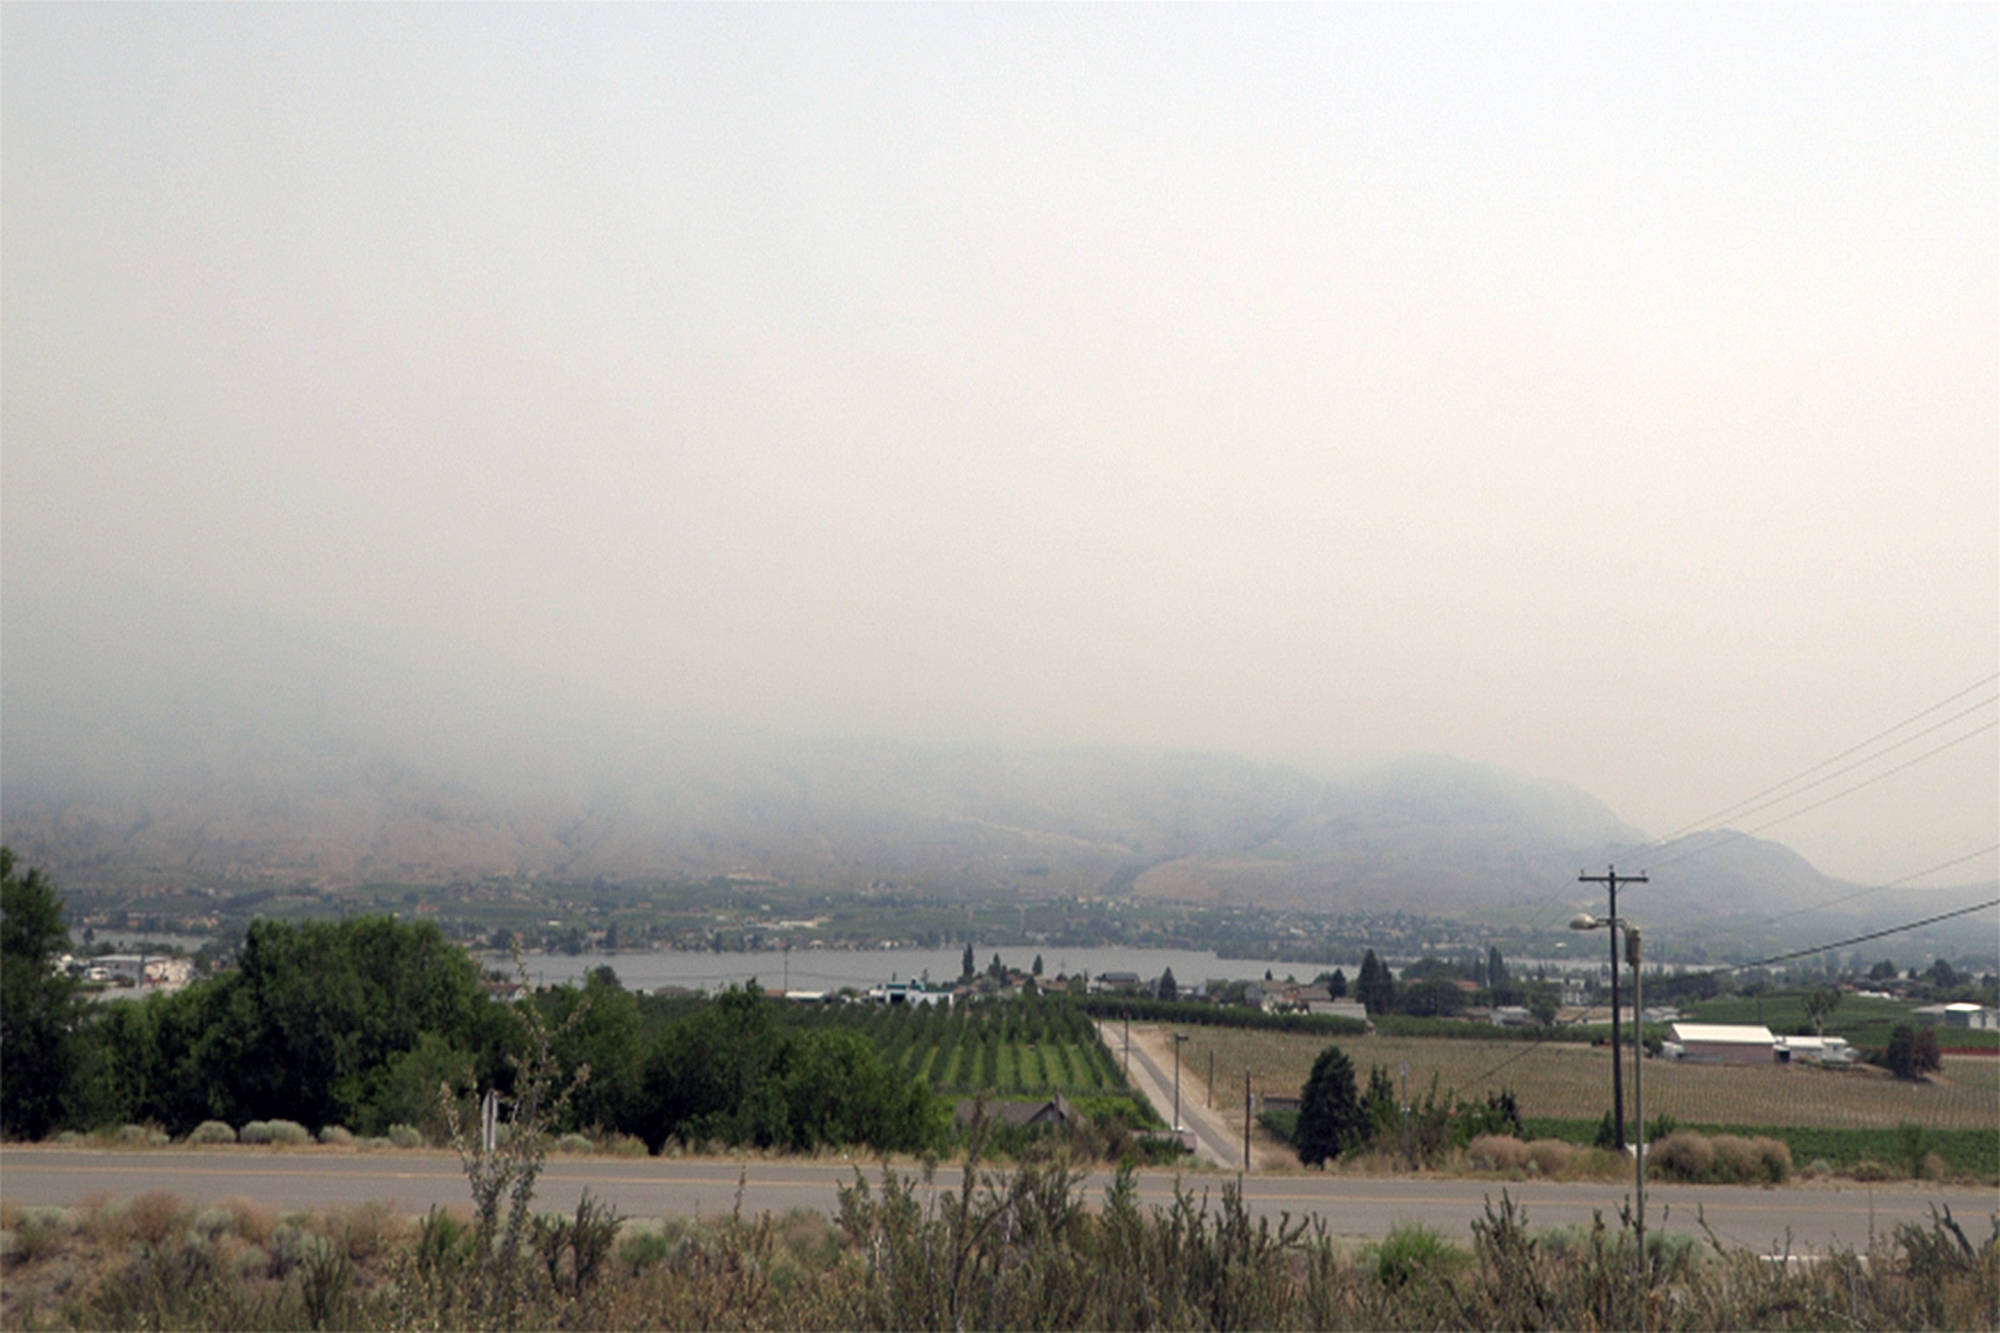 The skies above Osoyoos are thick with smoke from the nearby Nk'Mip Creek wildfire. (Twila Amato /Black Press Media)